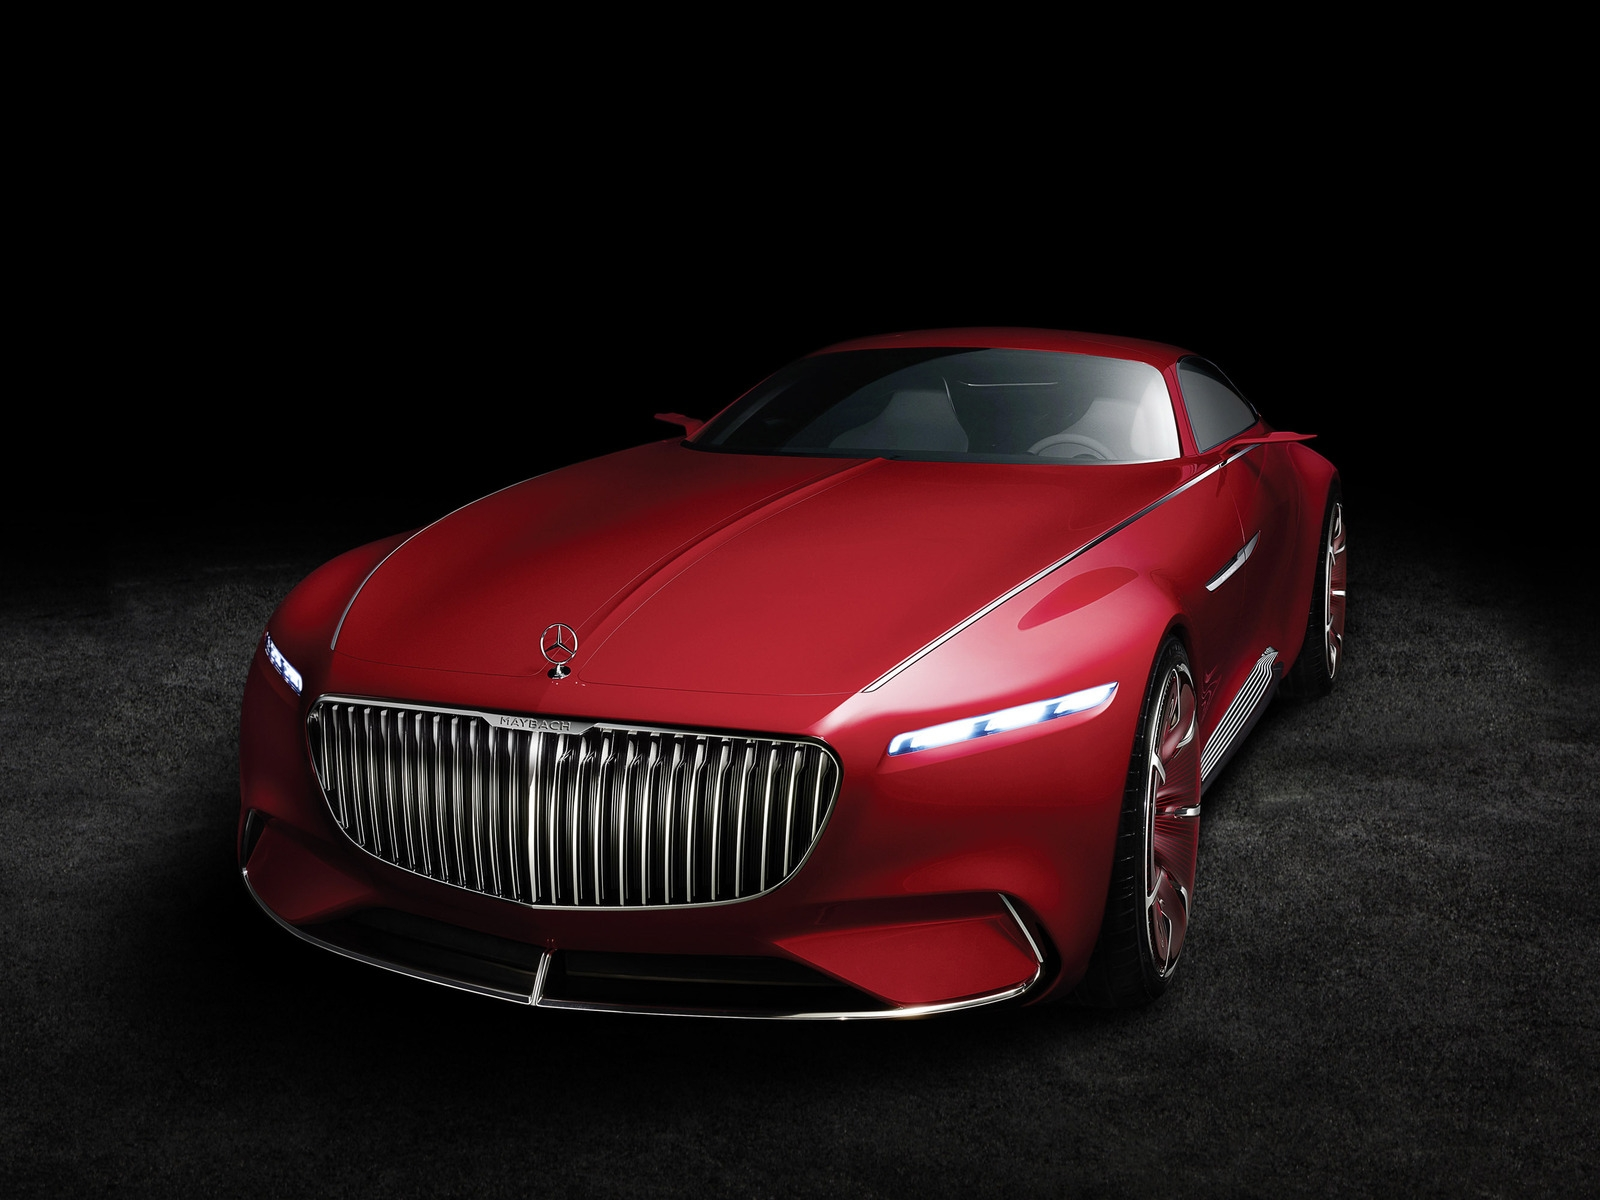 2016 Vision Mercedes Maybach 6 for 1600 x 1200 resolution